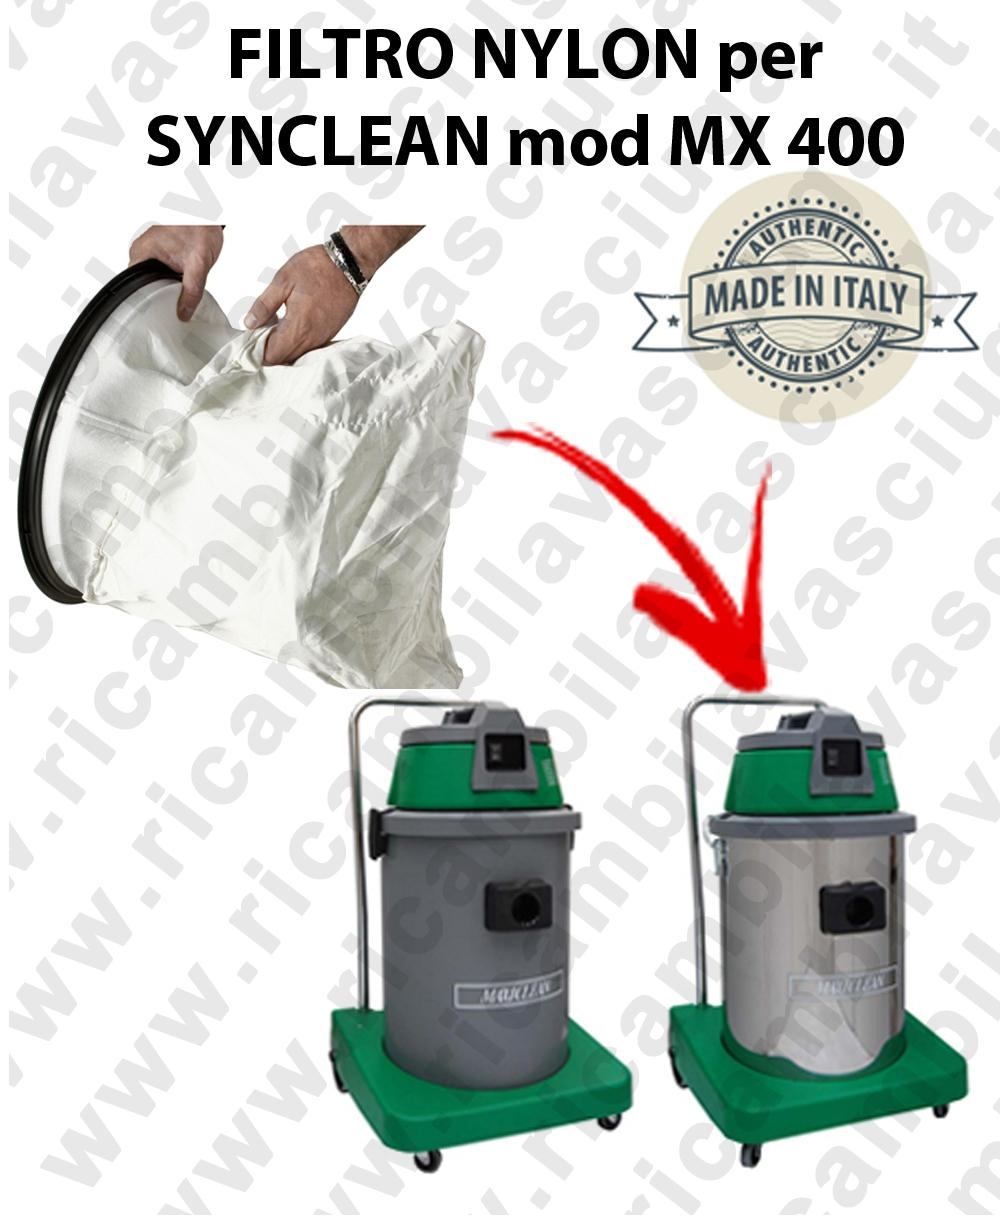 NYLON filter bag cod: 3001220 for vacuum cleaner MAXICLEAN model MX400 BY SYNCLEAN